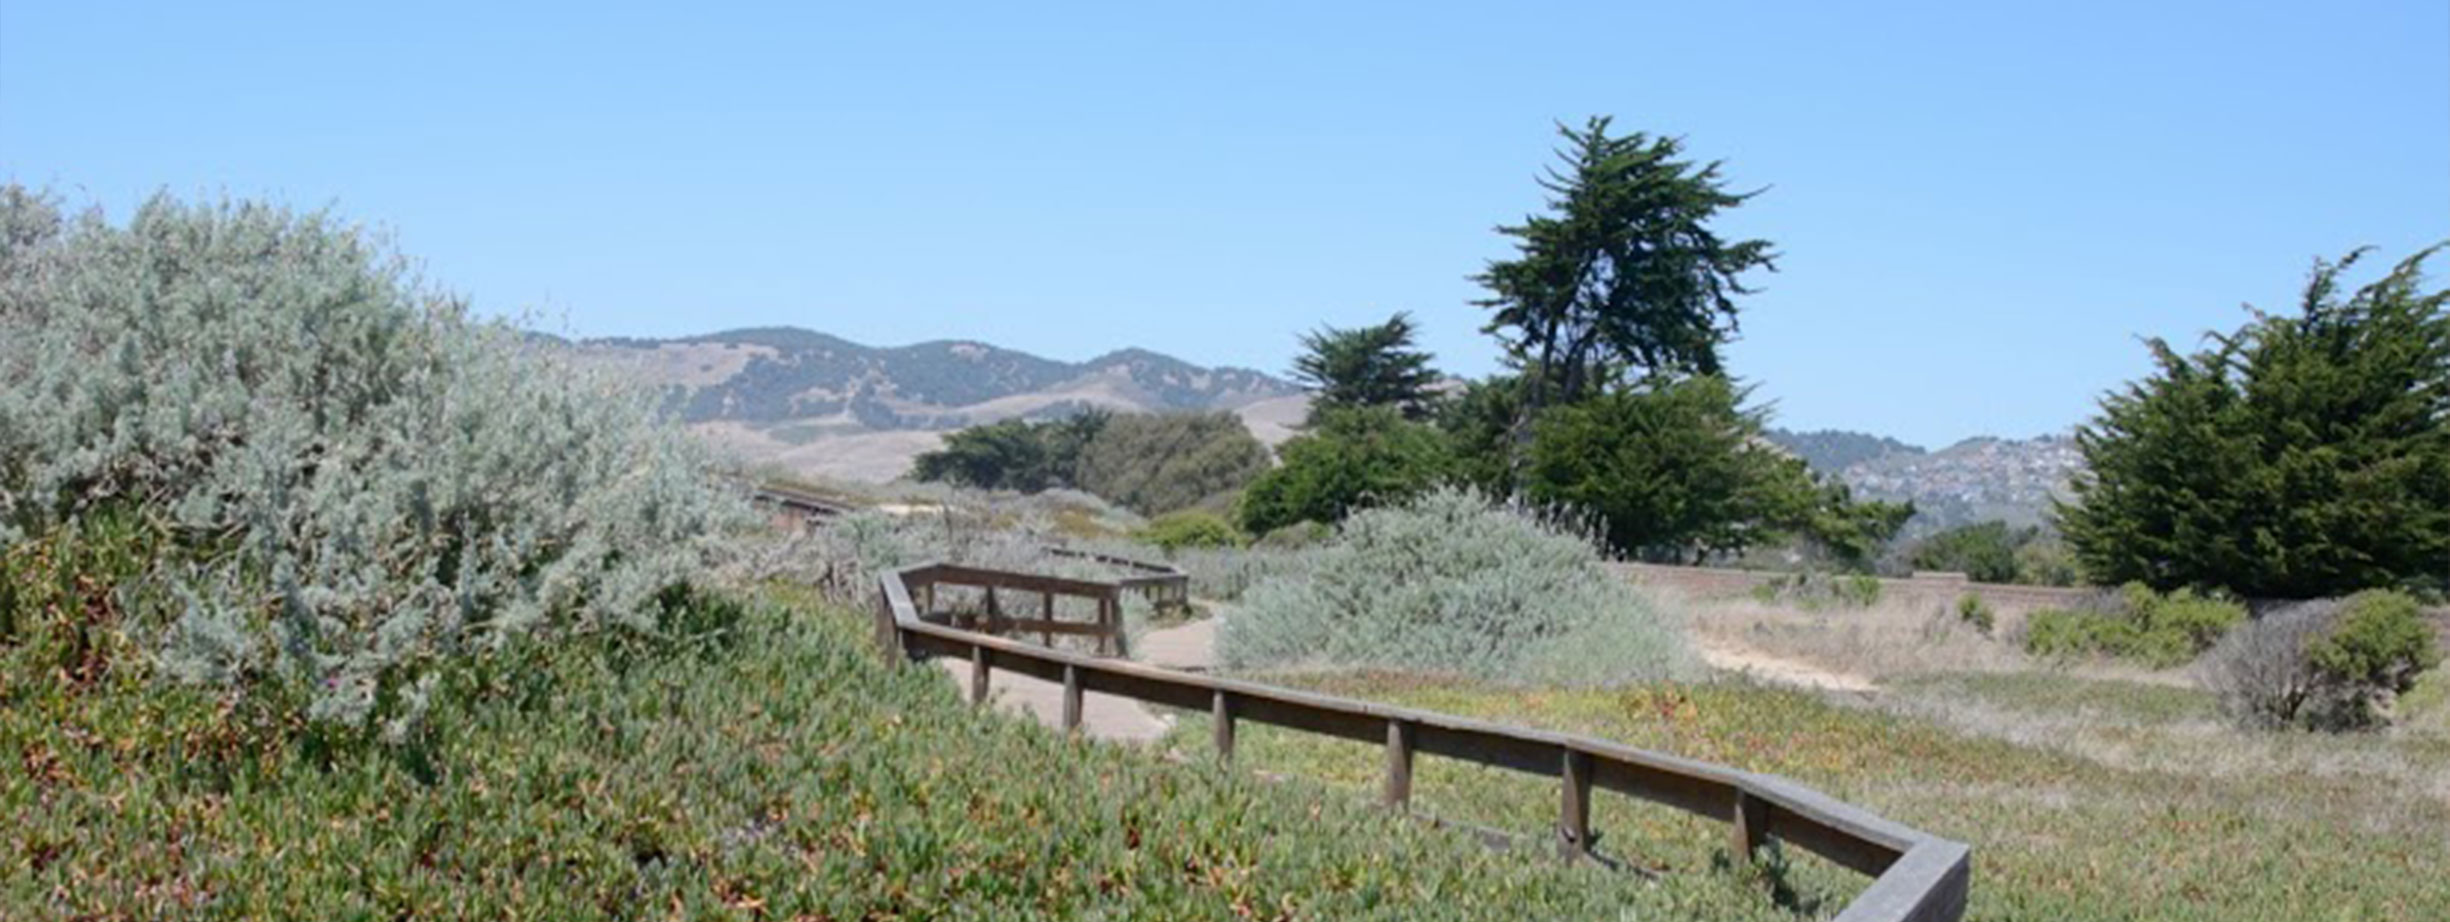 Photo of a hiking trail in San Luis Obispo.